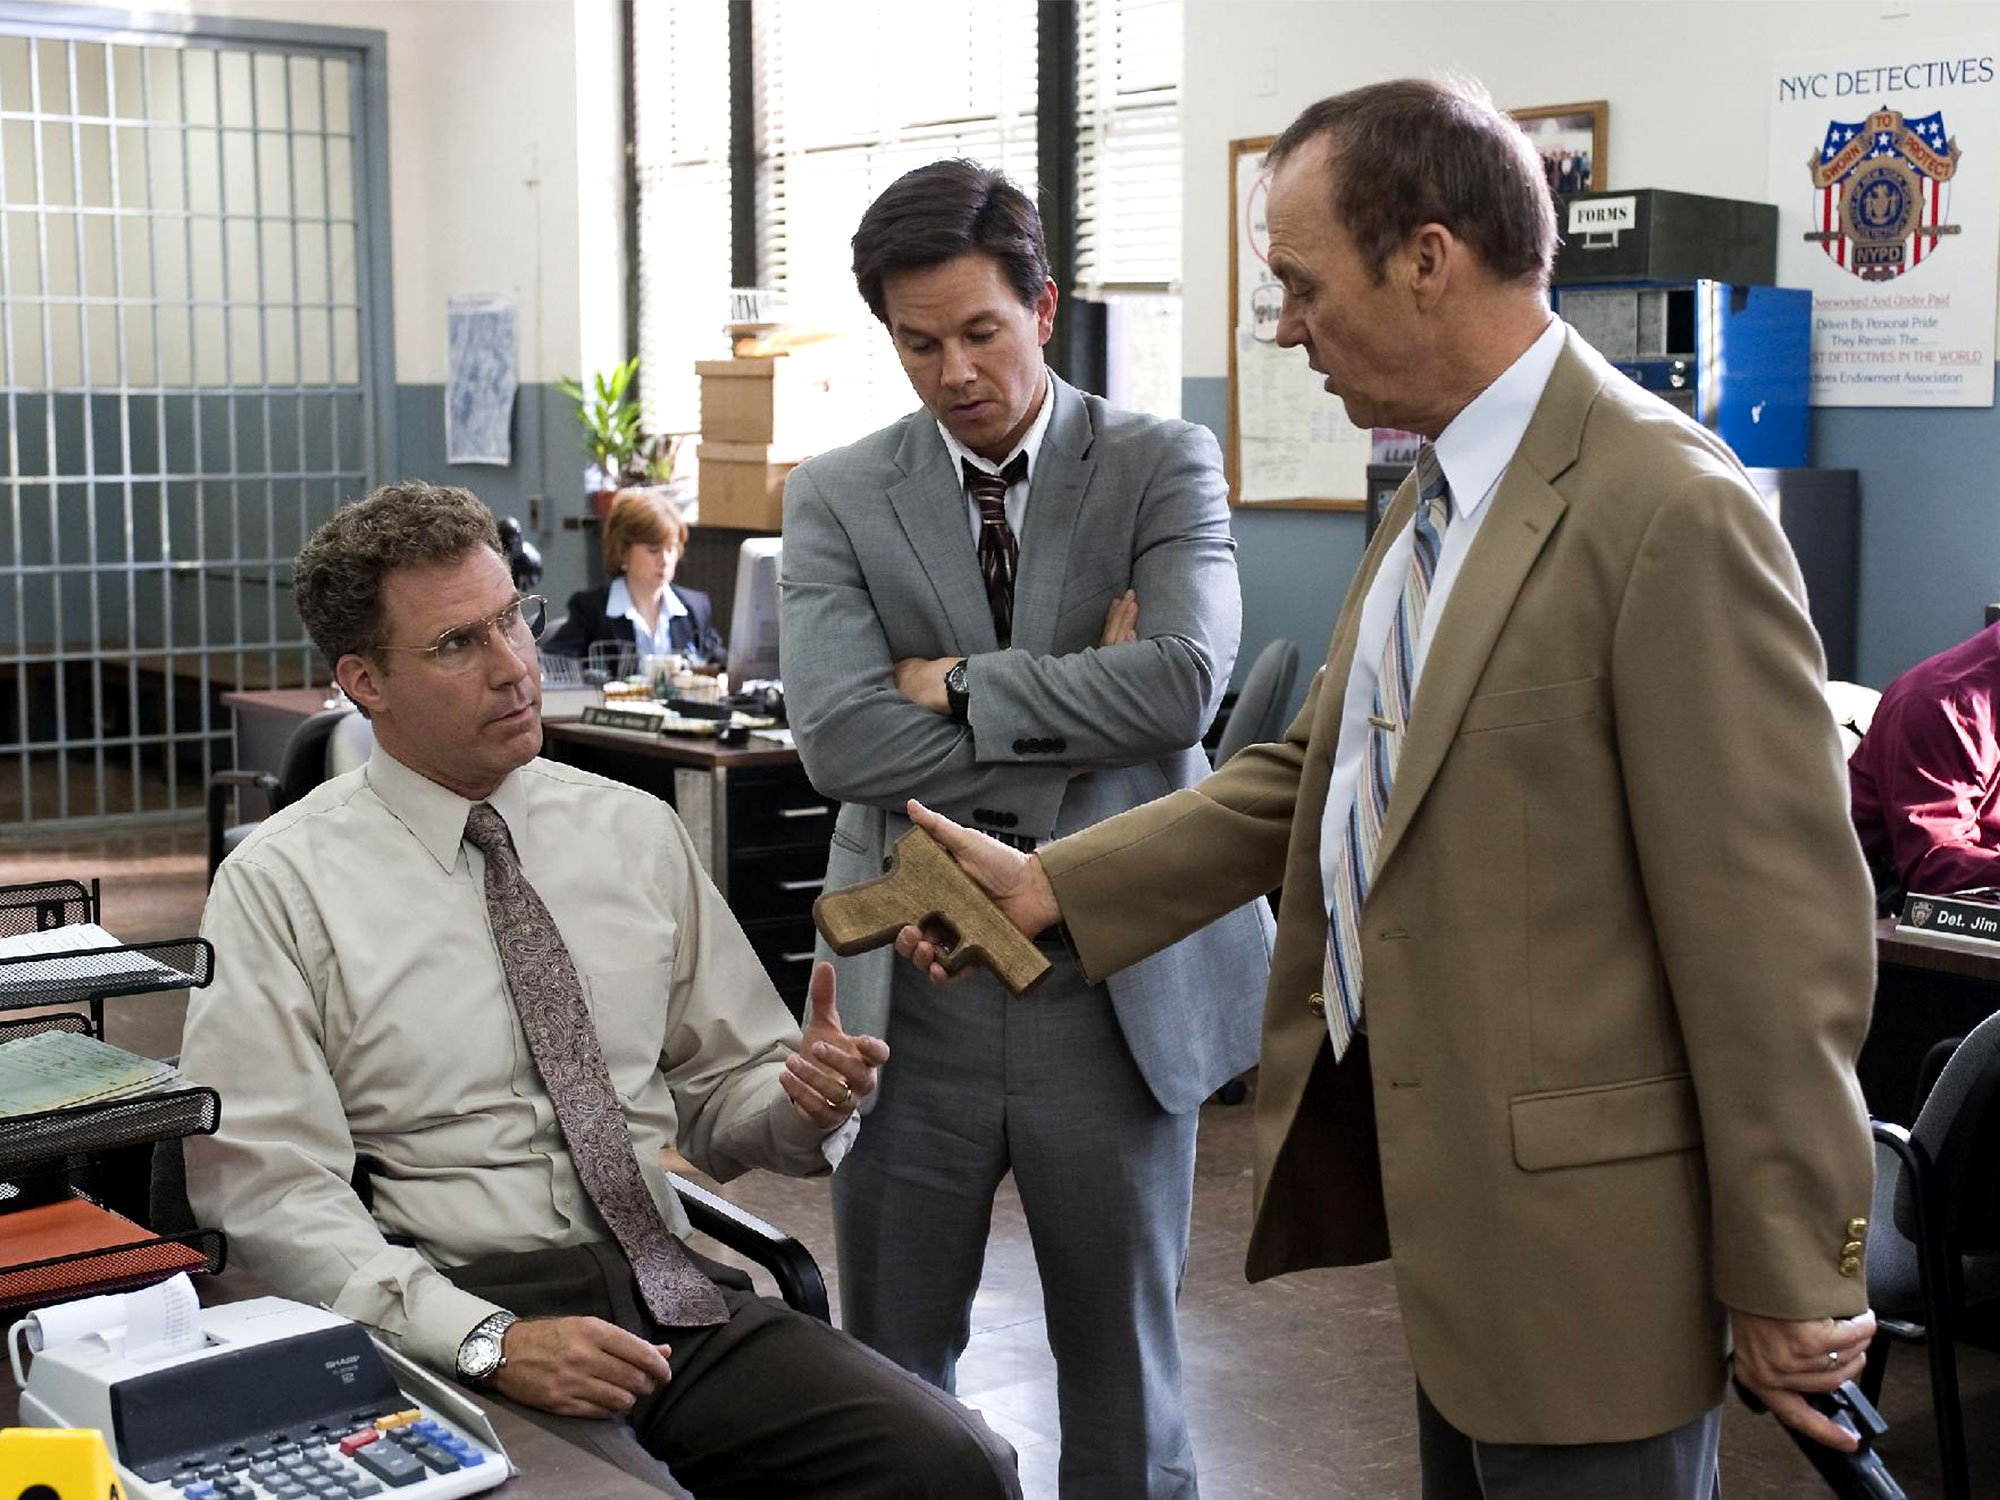 Will Ferrell, Mark Wahlberg and Michael Keaton in The Other Guys (2010)